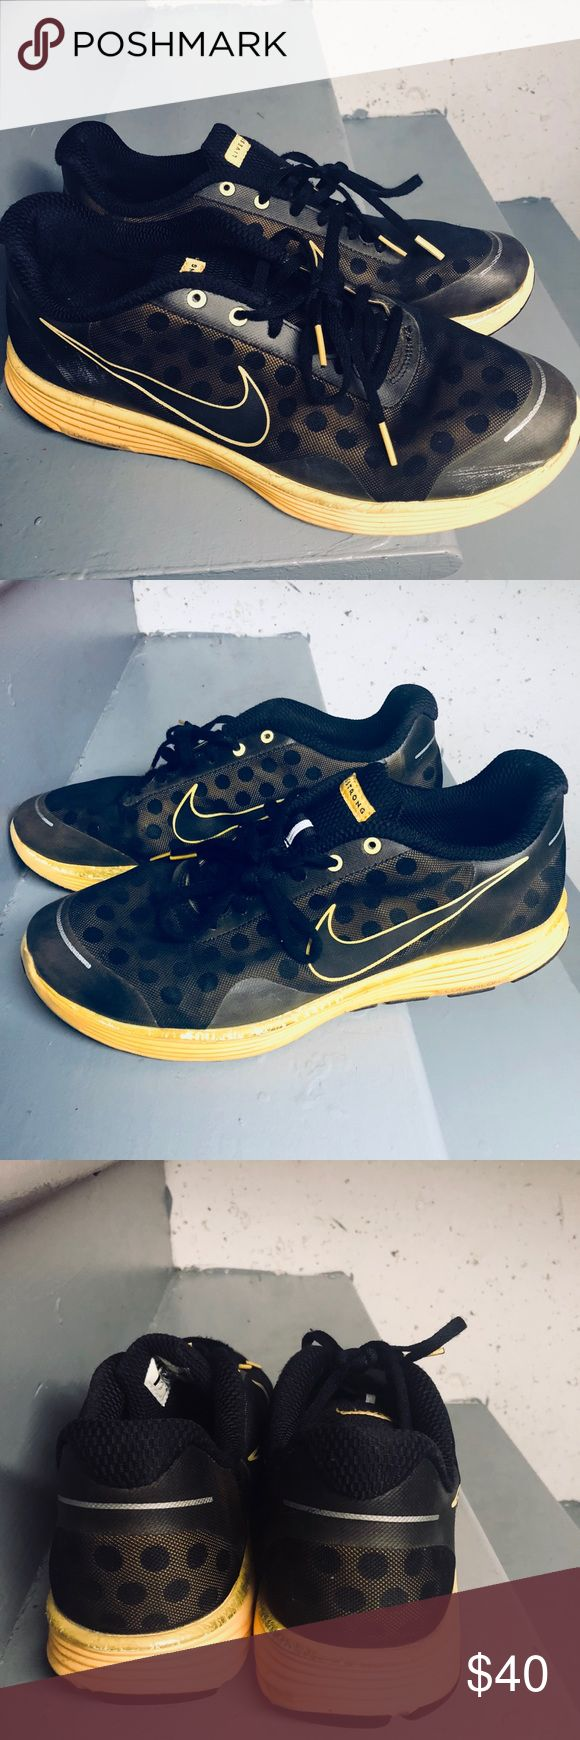 Nike LIVESTRONG Sneakers Nike LIVESTRONG Sneakers Size 11 Nike Shoes Sneakers